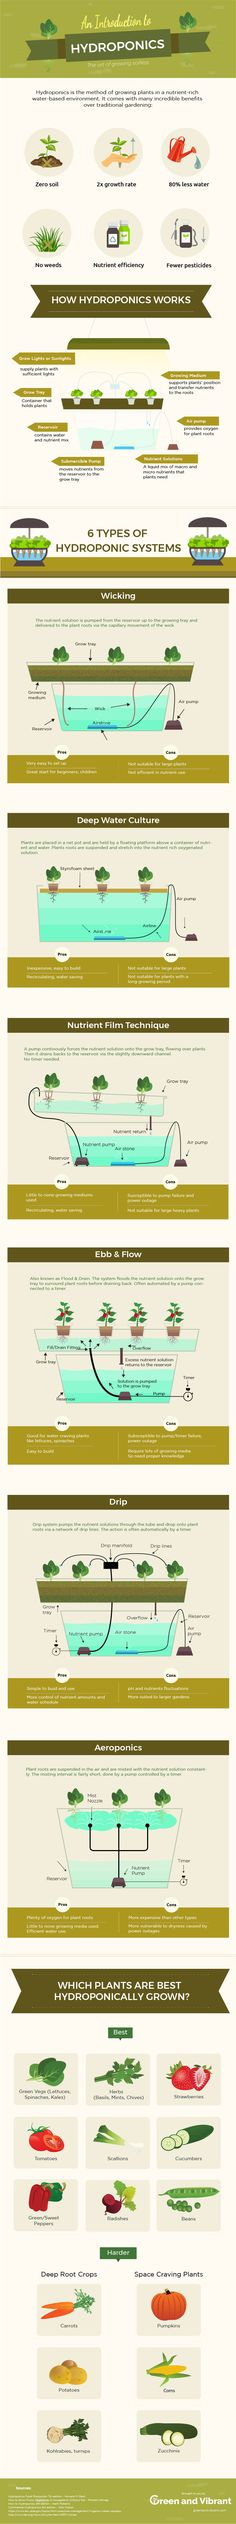 Growing food with Hydroponics What if you have to live in a place where the soils are arable? Or how to provide large amounts of fresh food for your family when your space is limited?